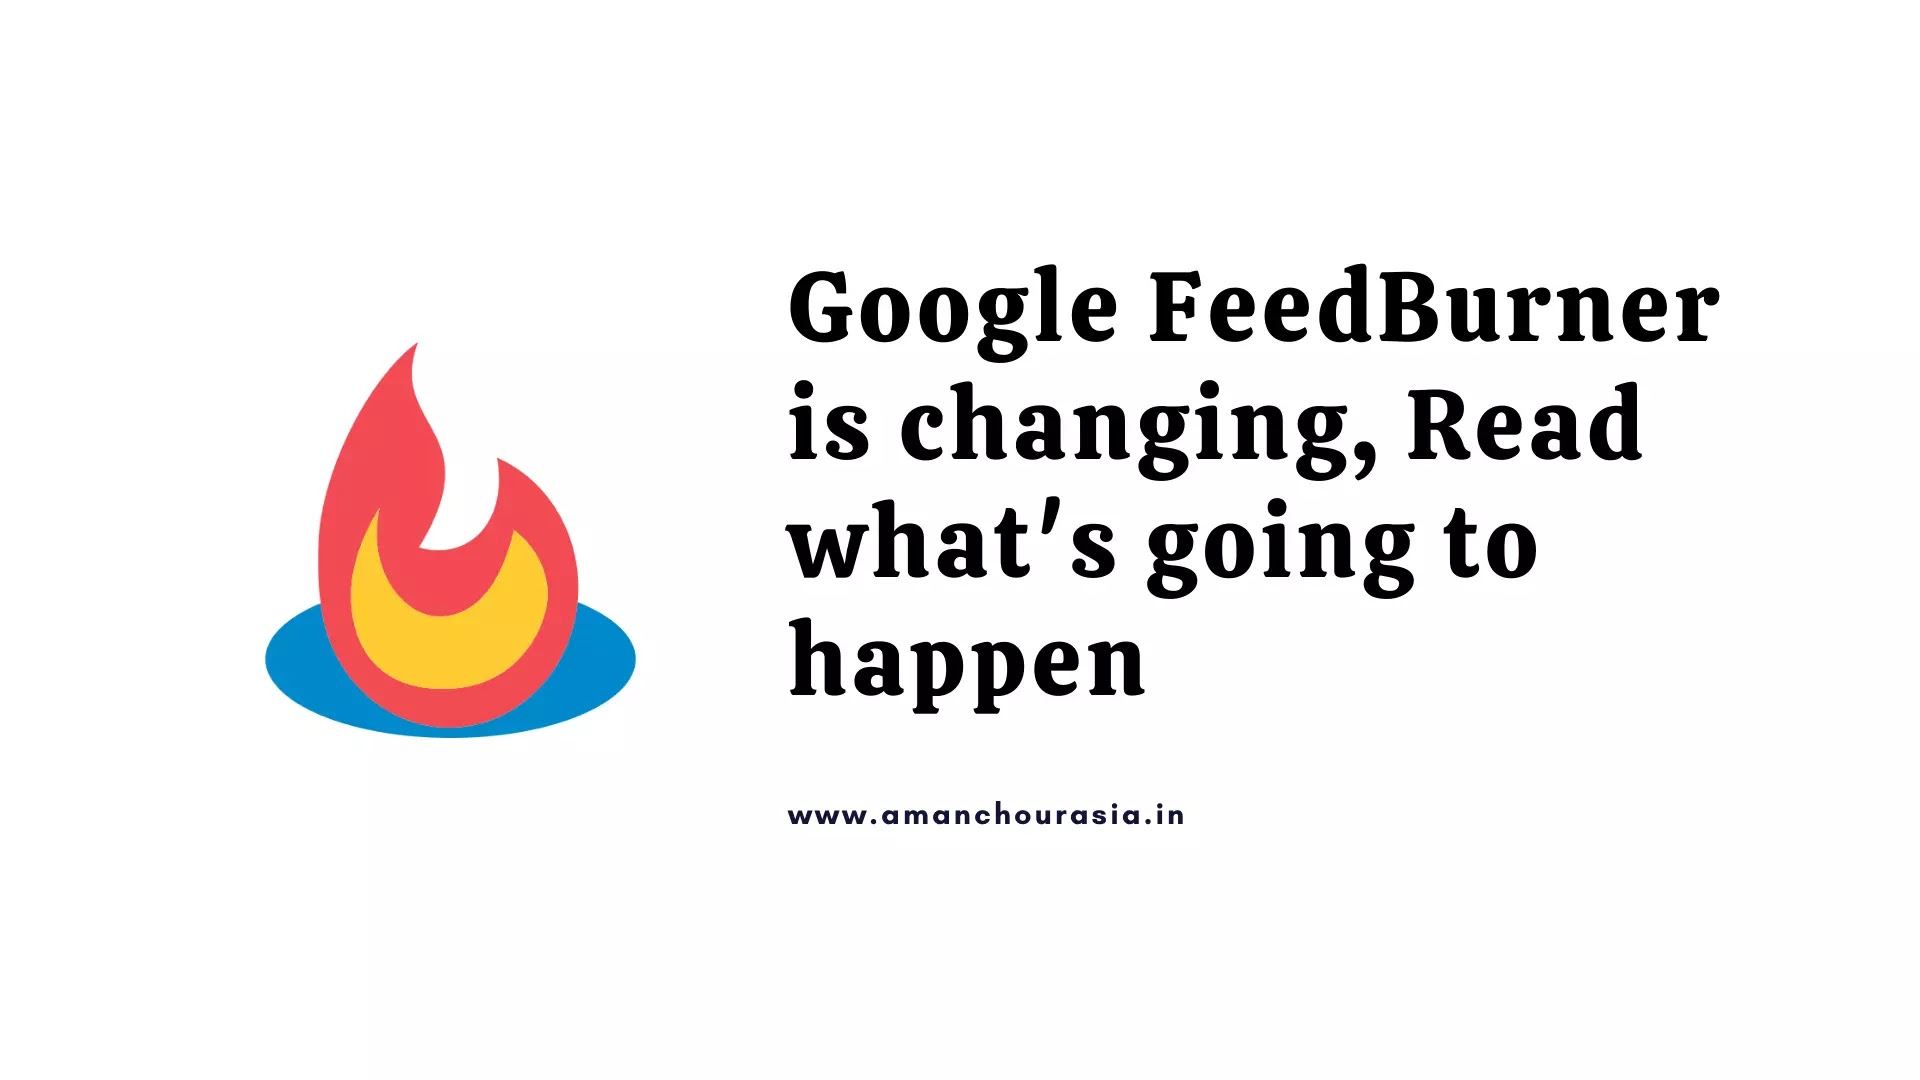 Google FeedBurner is changing, Read what's going to happen